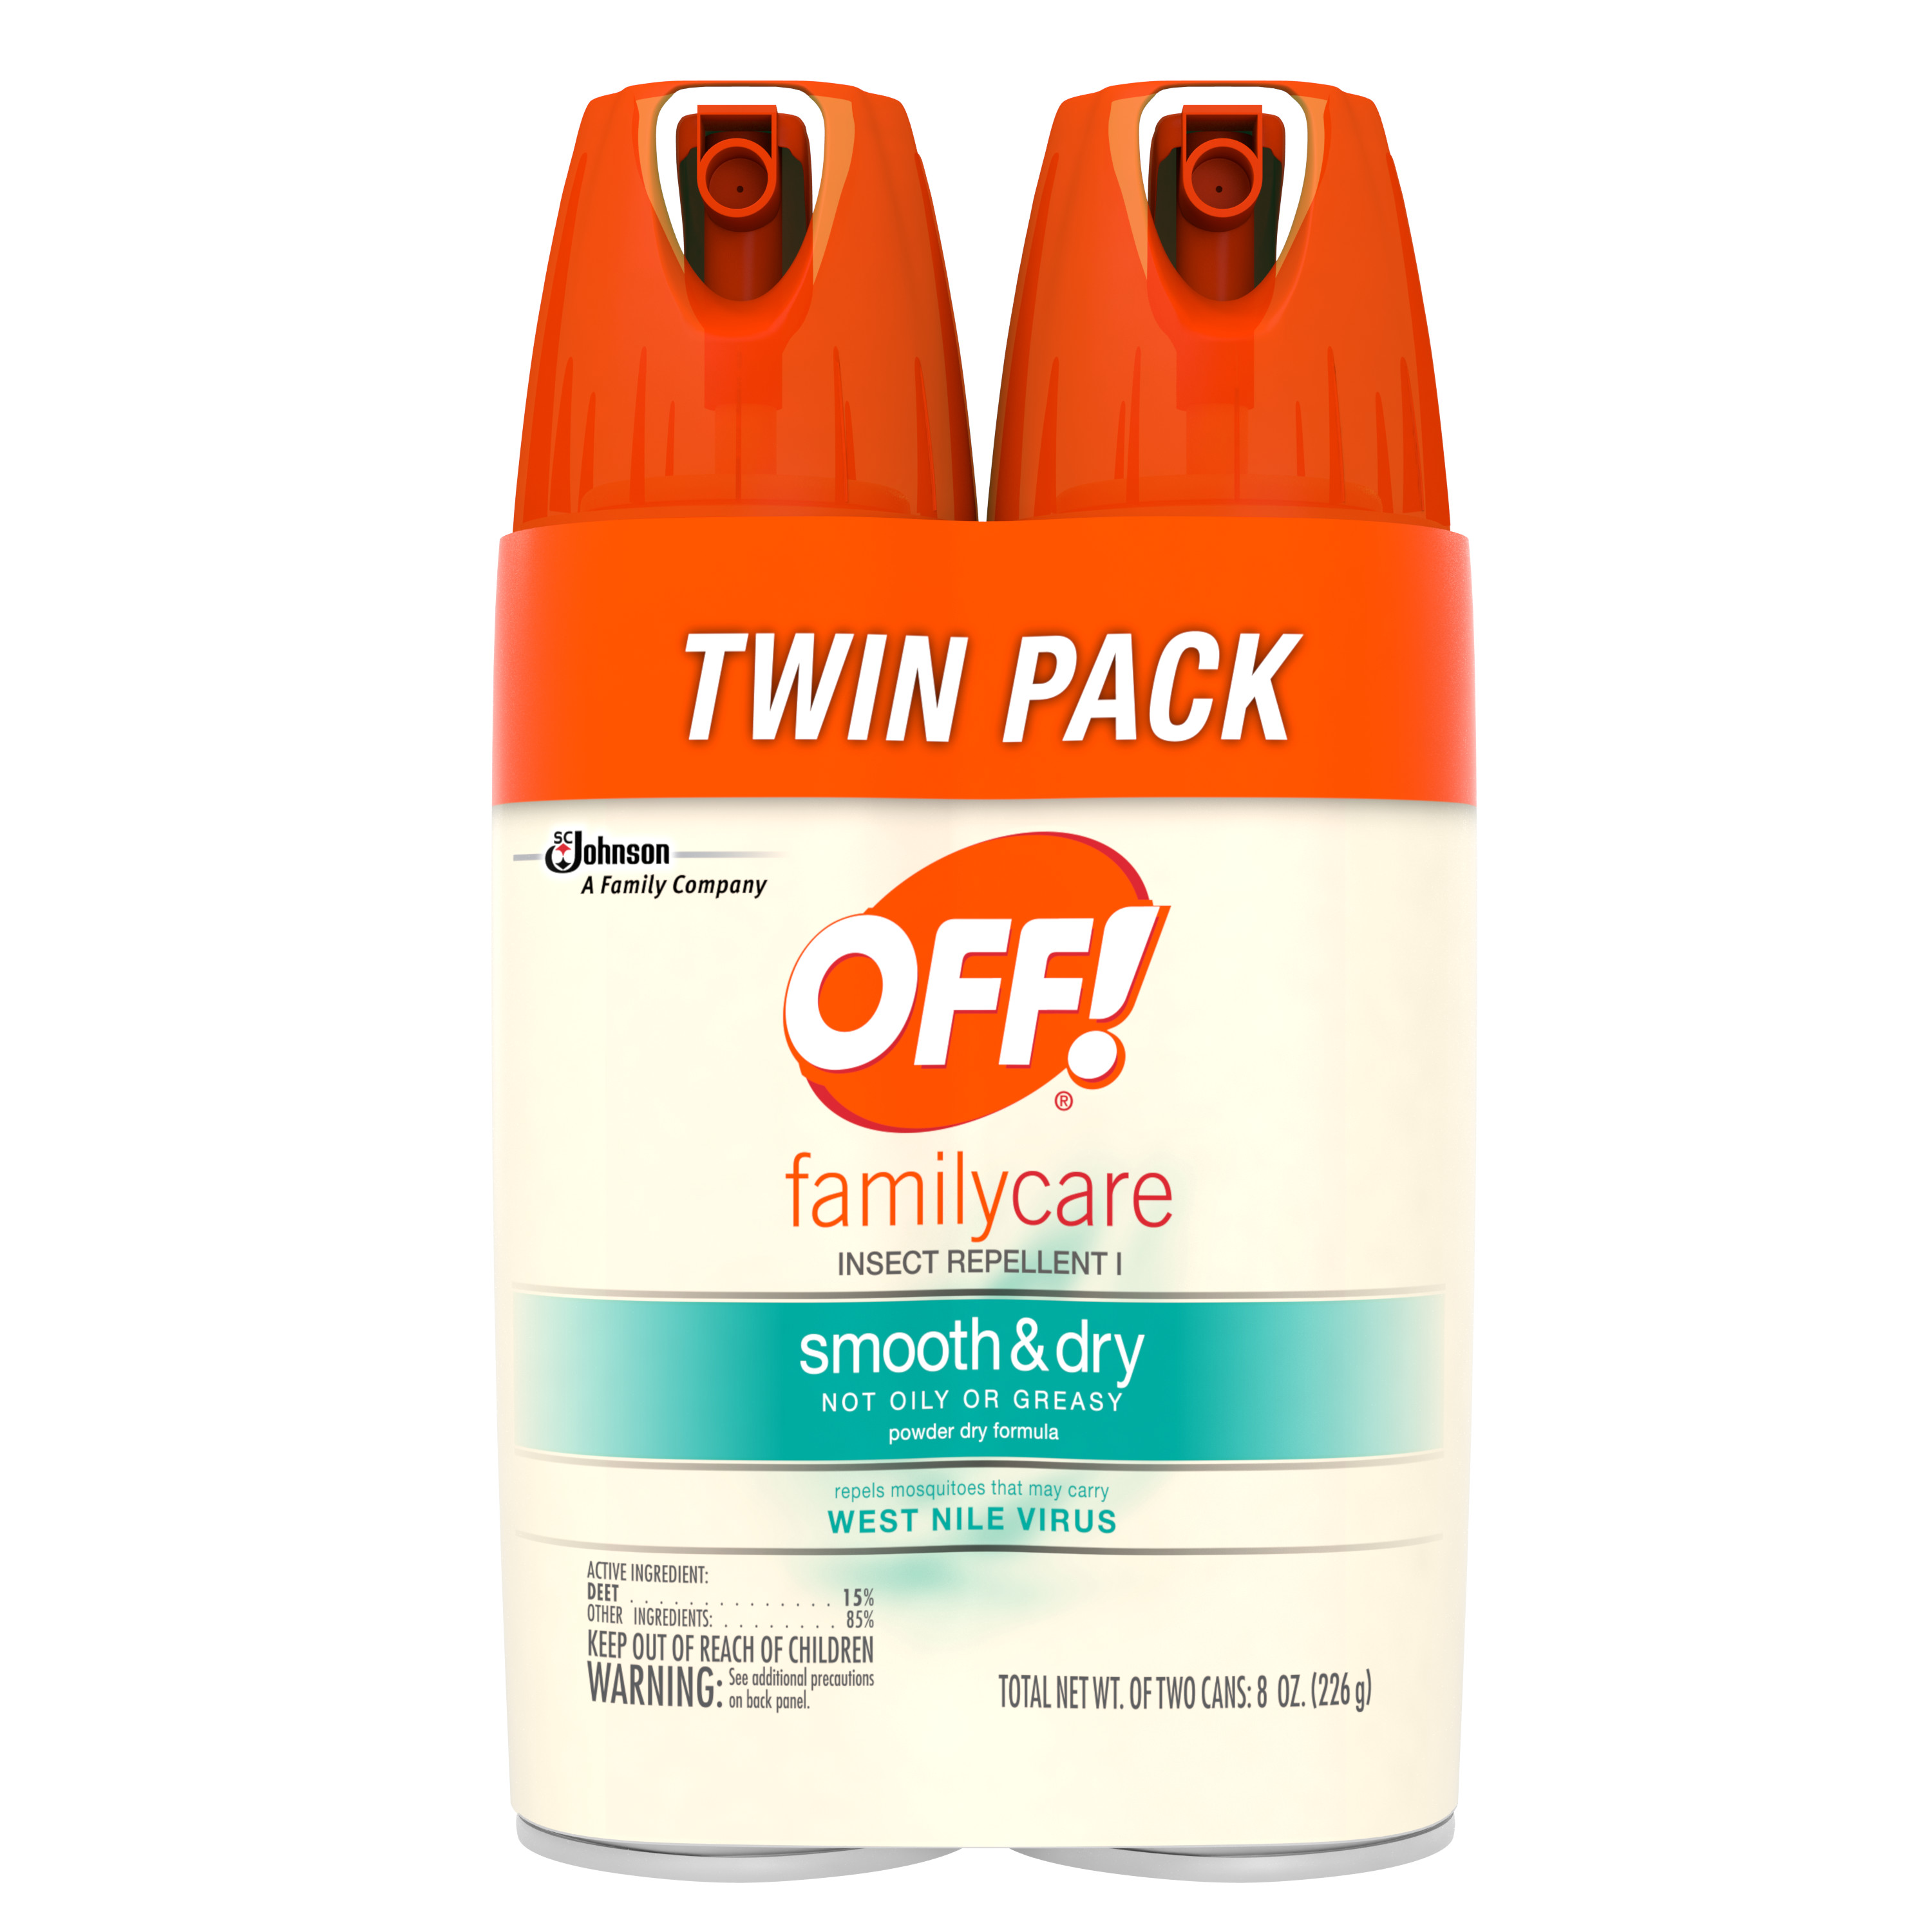 OFF! FamilyCare Insect Repellent I Smooth & Dry, 2 count, 4 Ounces